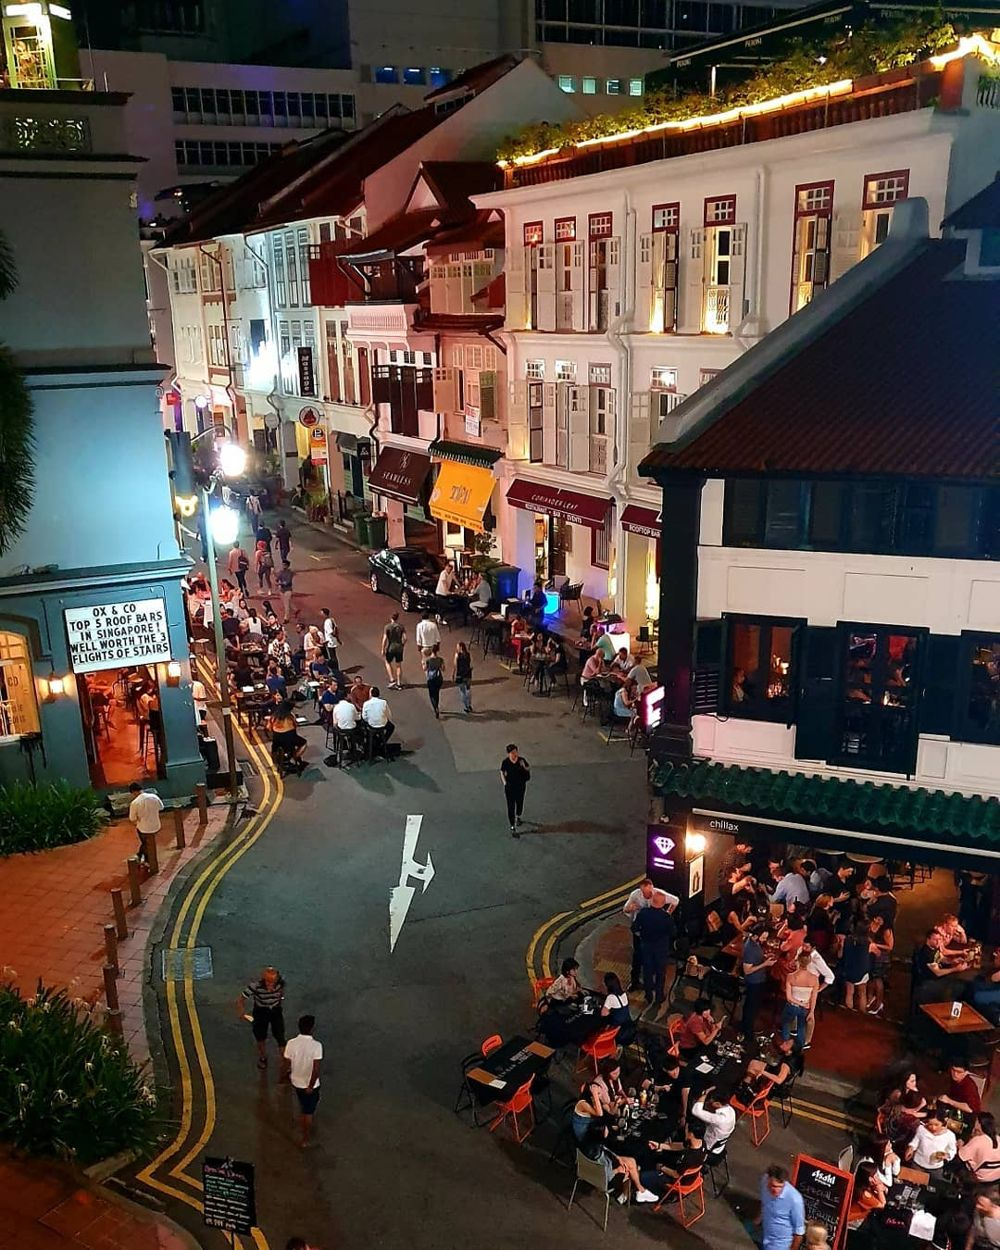 Ann Siang Hill at night